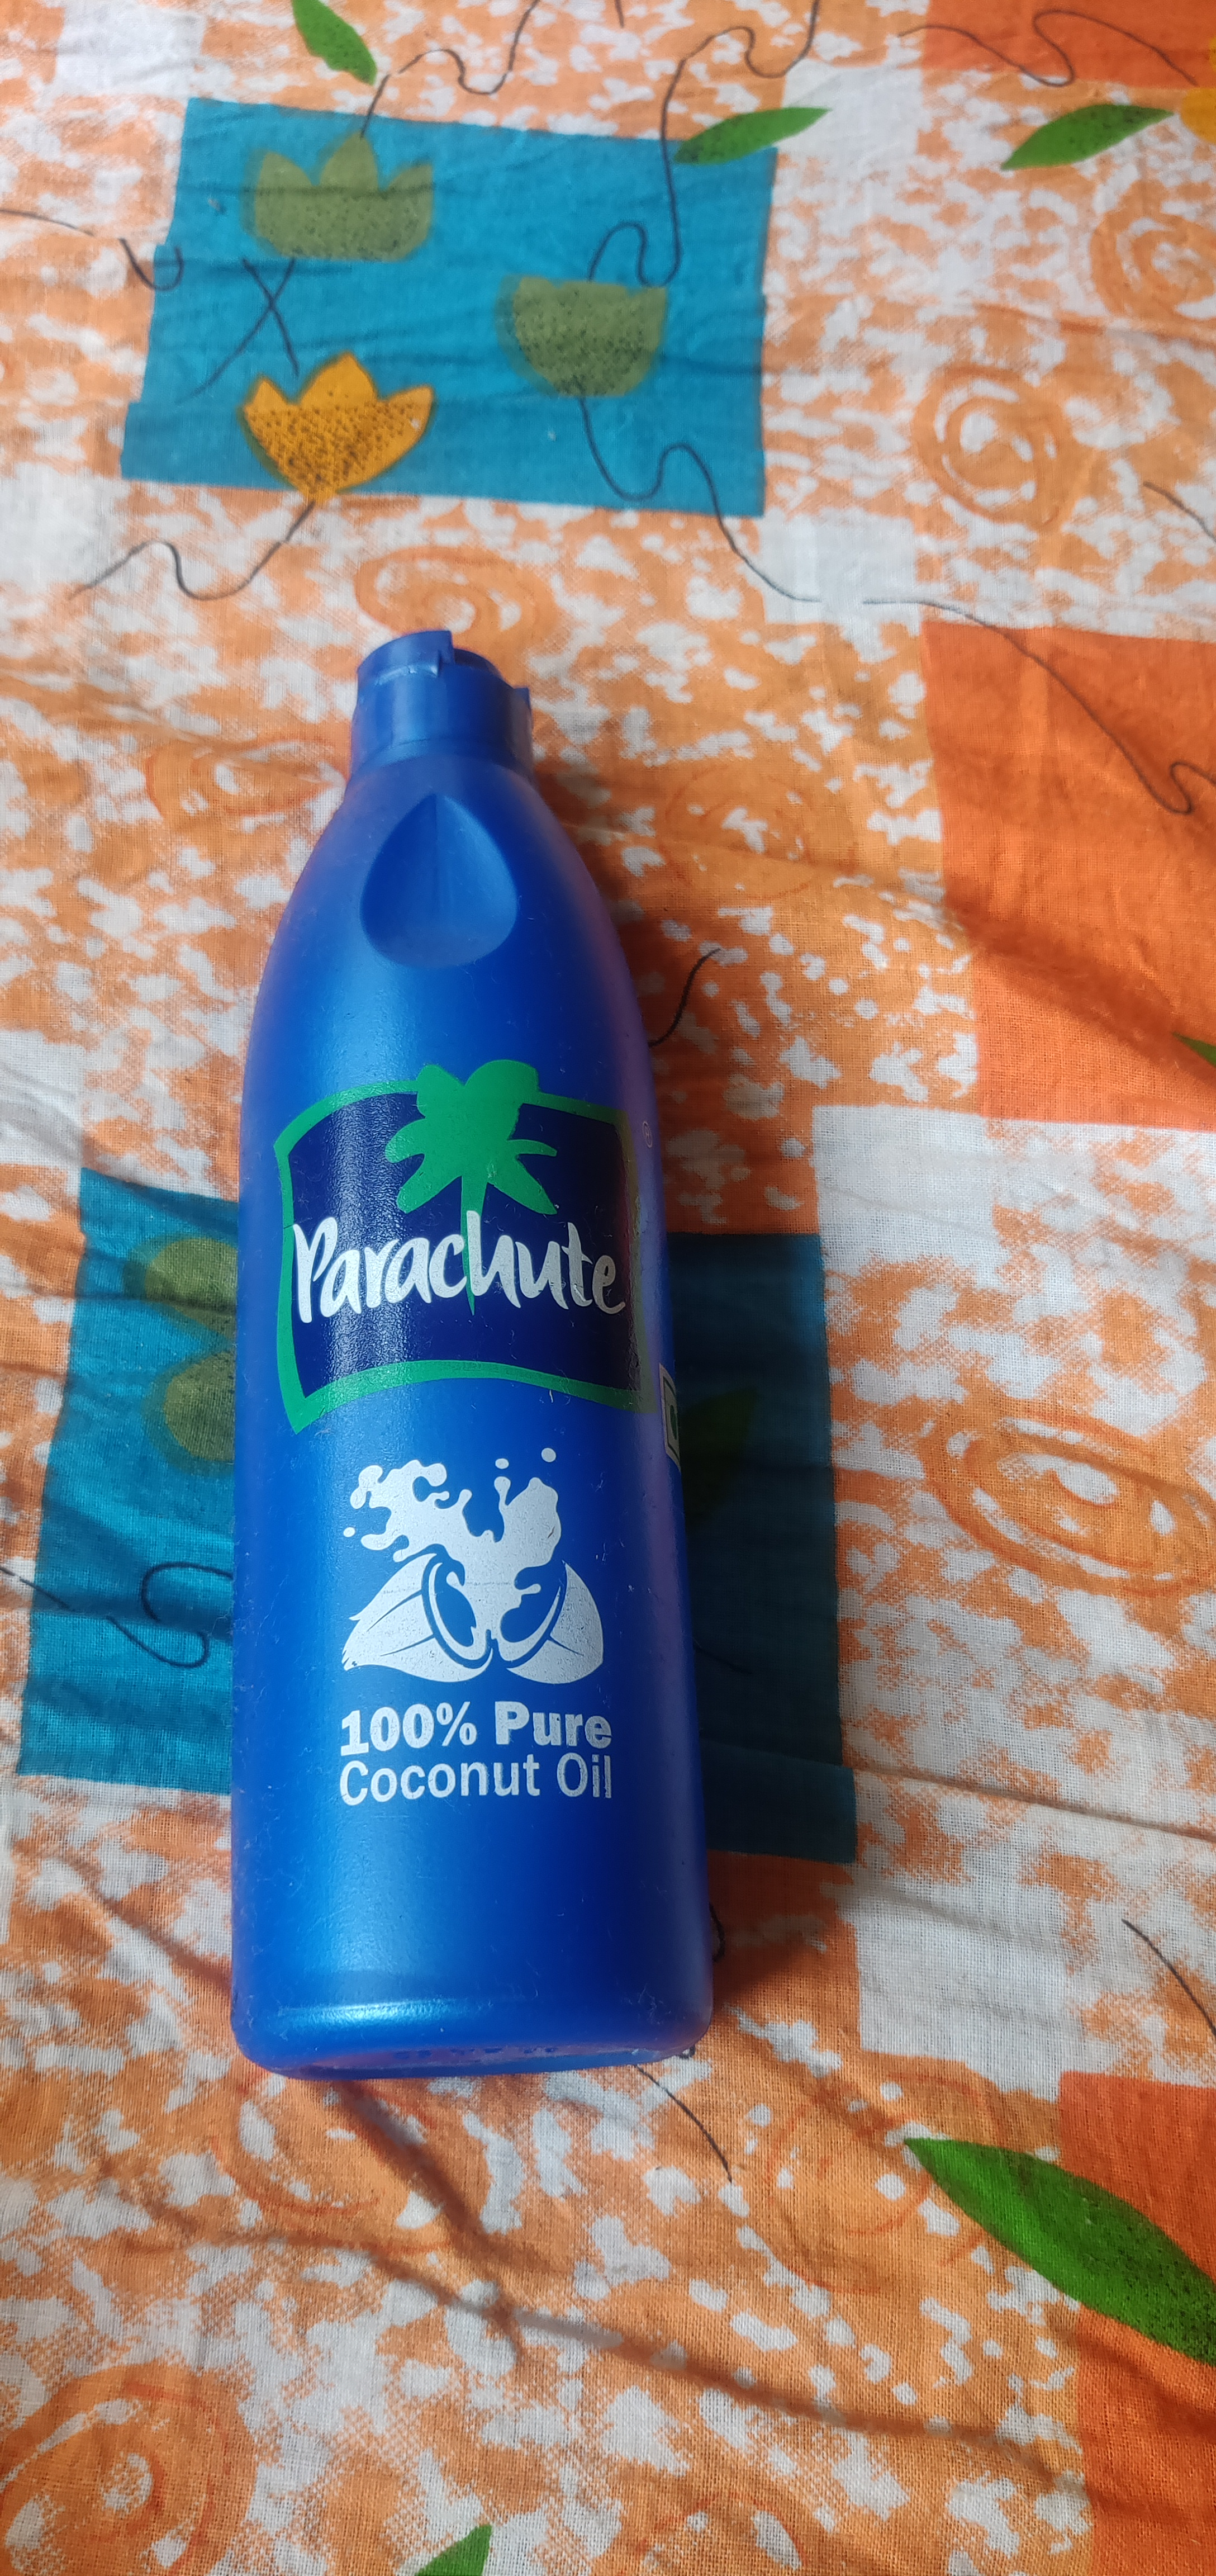 Parachute Advansed Coconut Hair Oil-Oil that improves the quality and quantity of your hair.-By pooja16